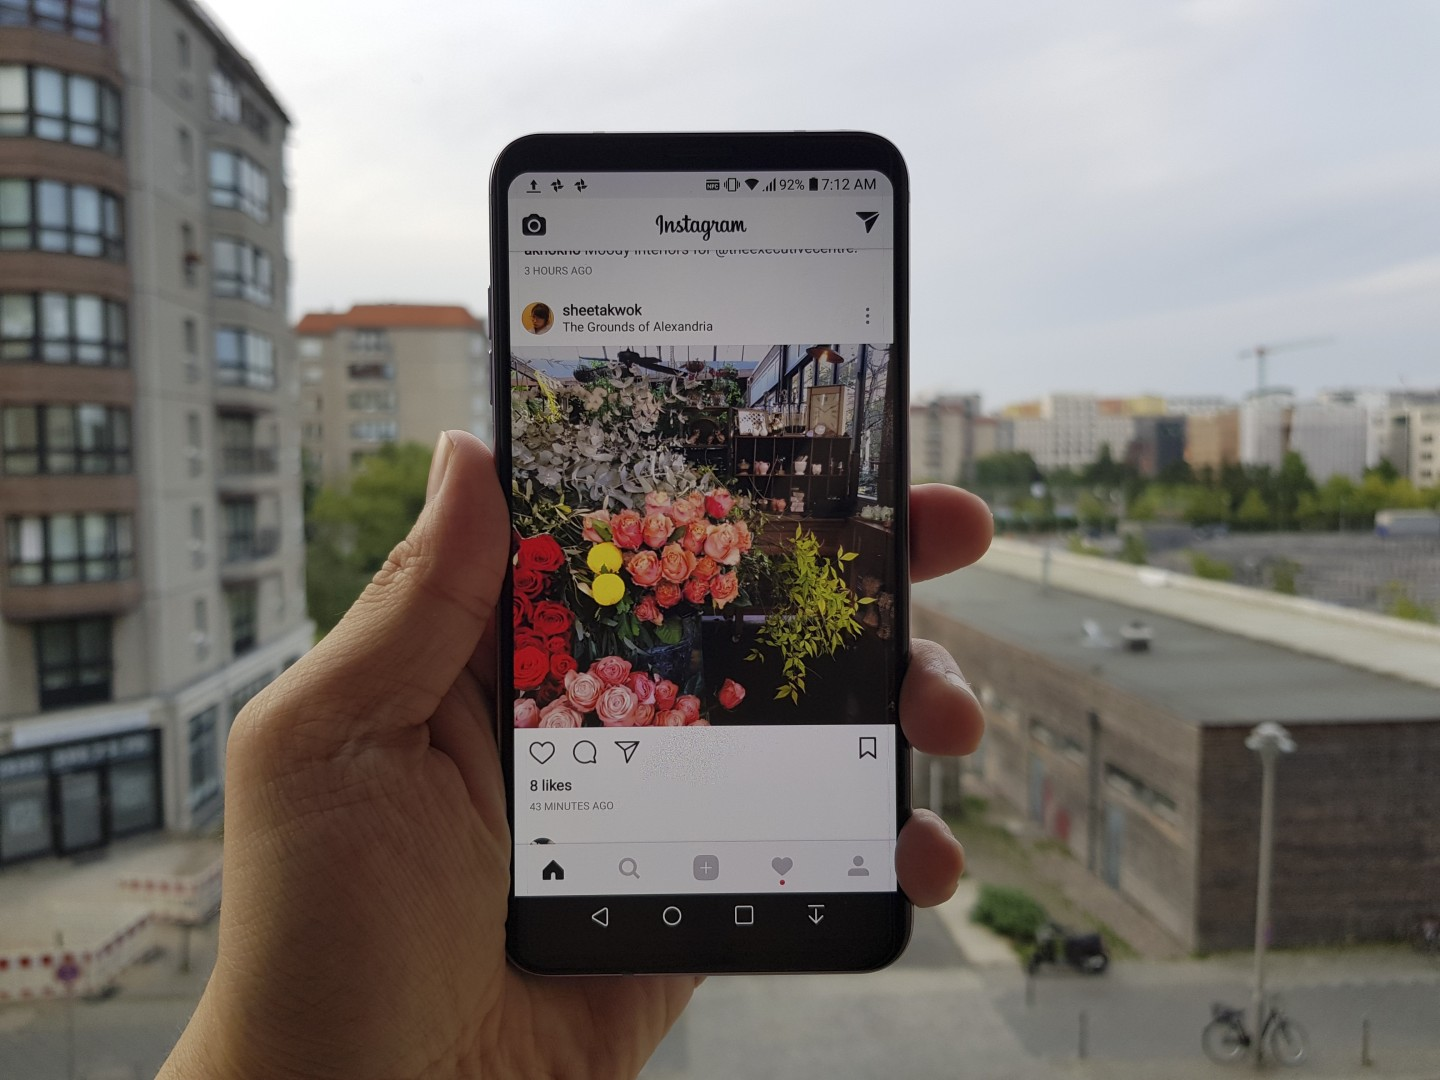 First impressions of the LG V30 smartphone – light, slim, curvy